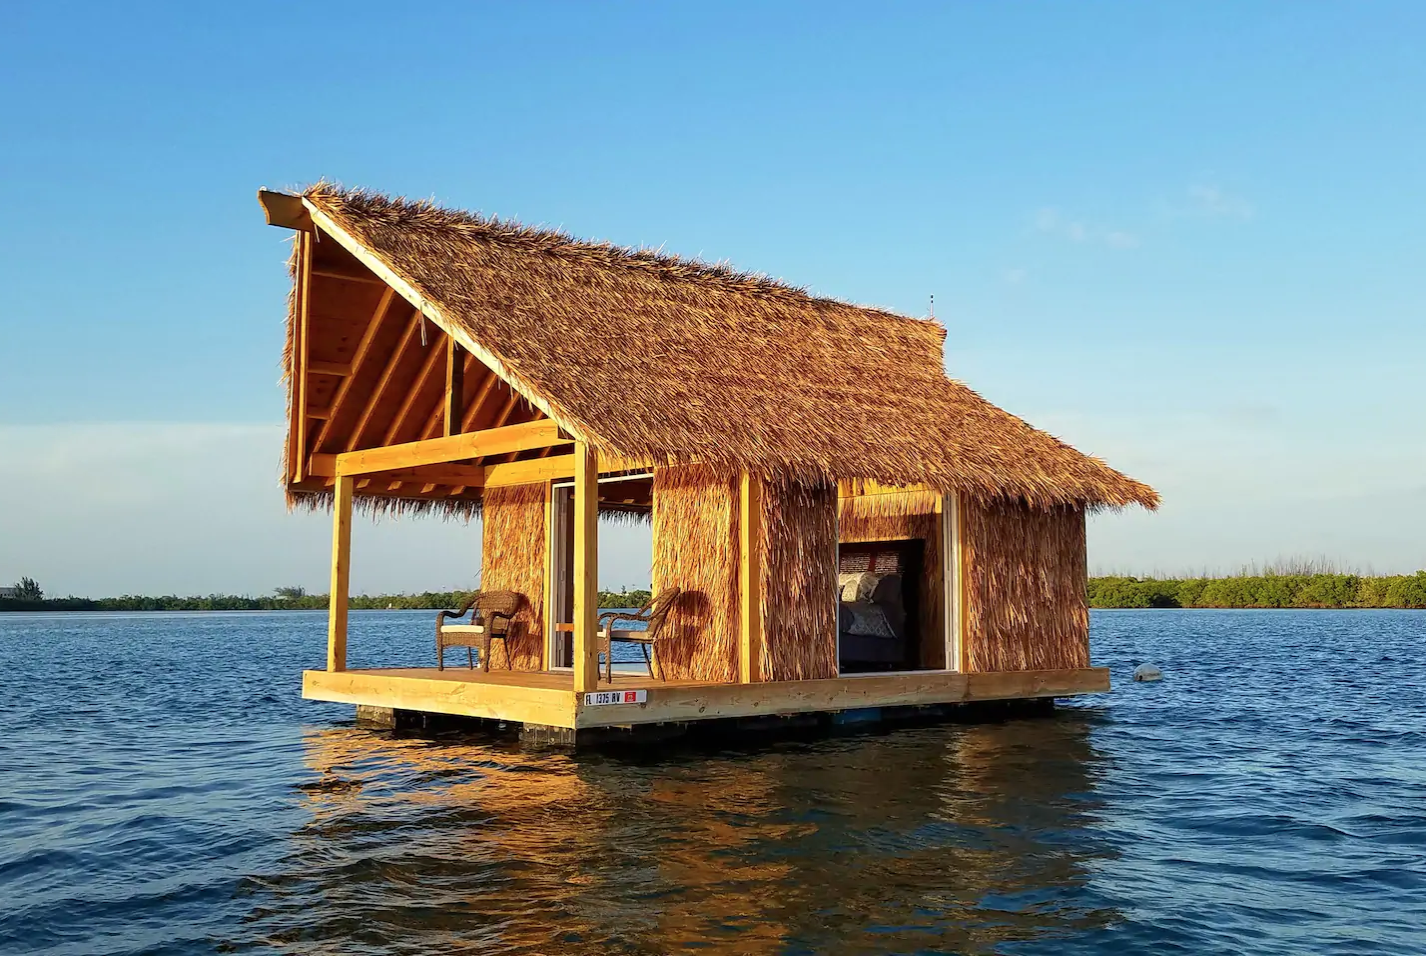 The most peaceful floating Airbnbs for vacationing on the water